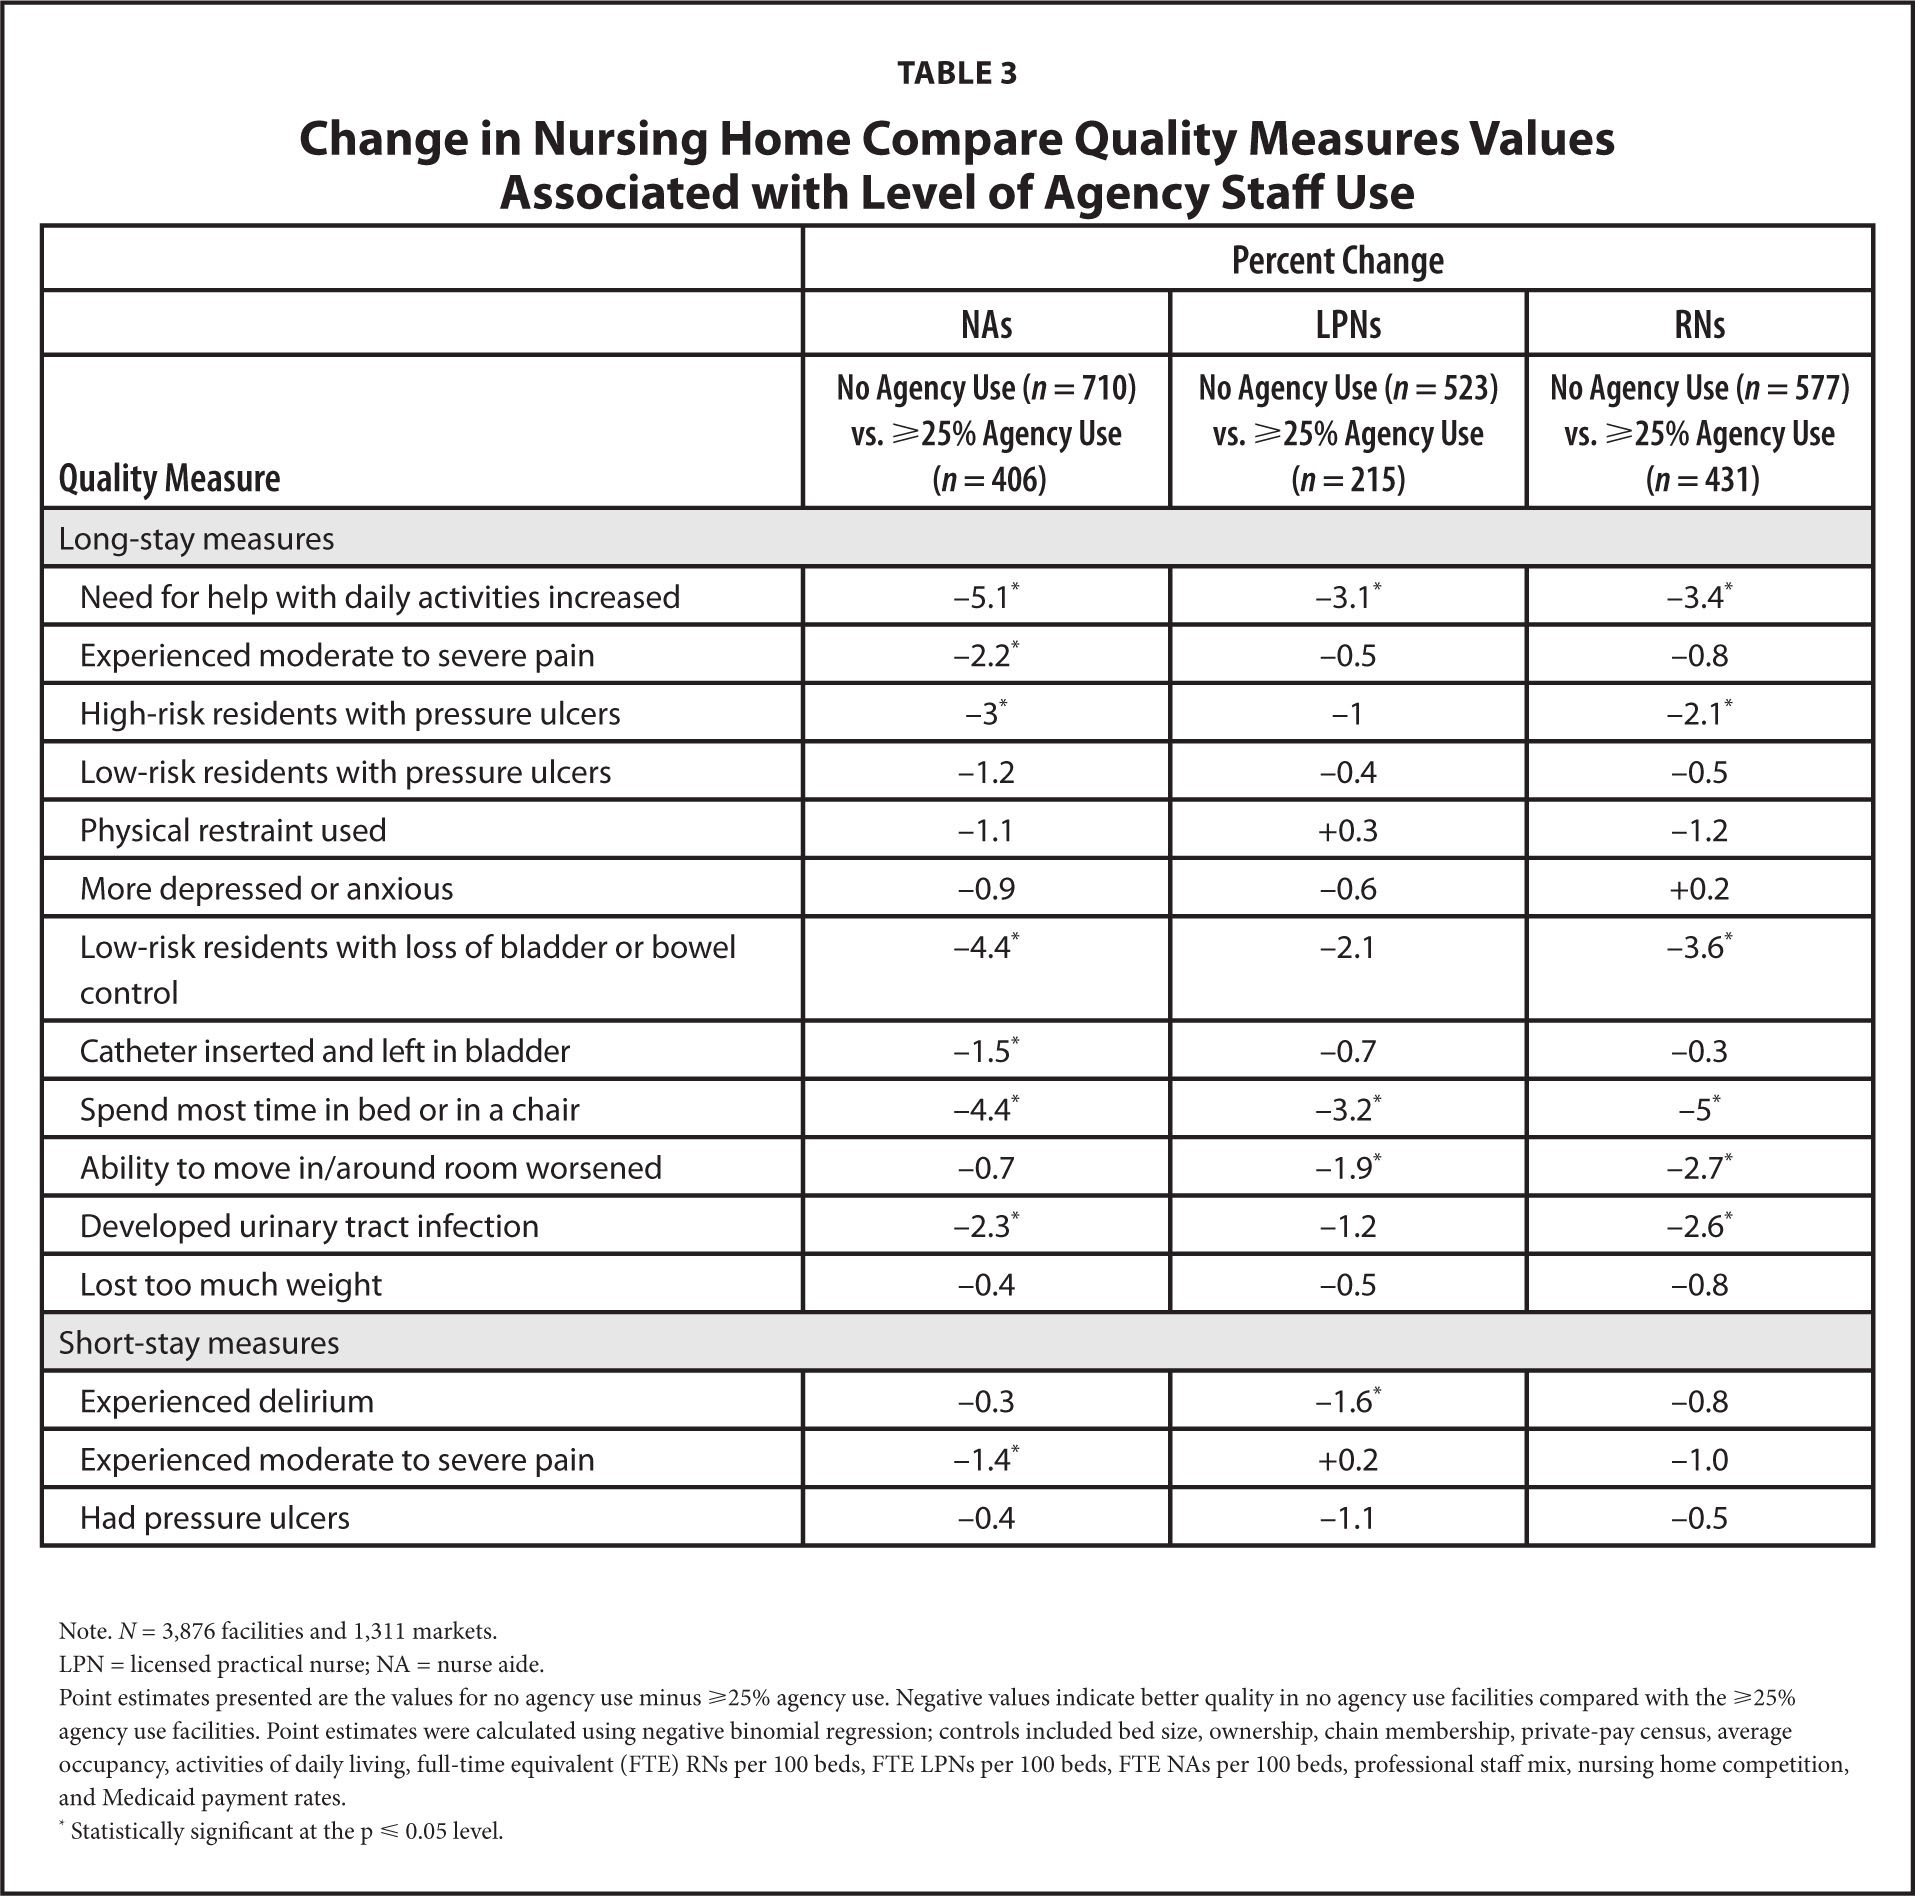 Change in Nursing Home Compare Quality Measures Values Associated with Level of Agency Staff Use